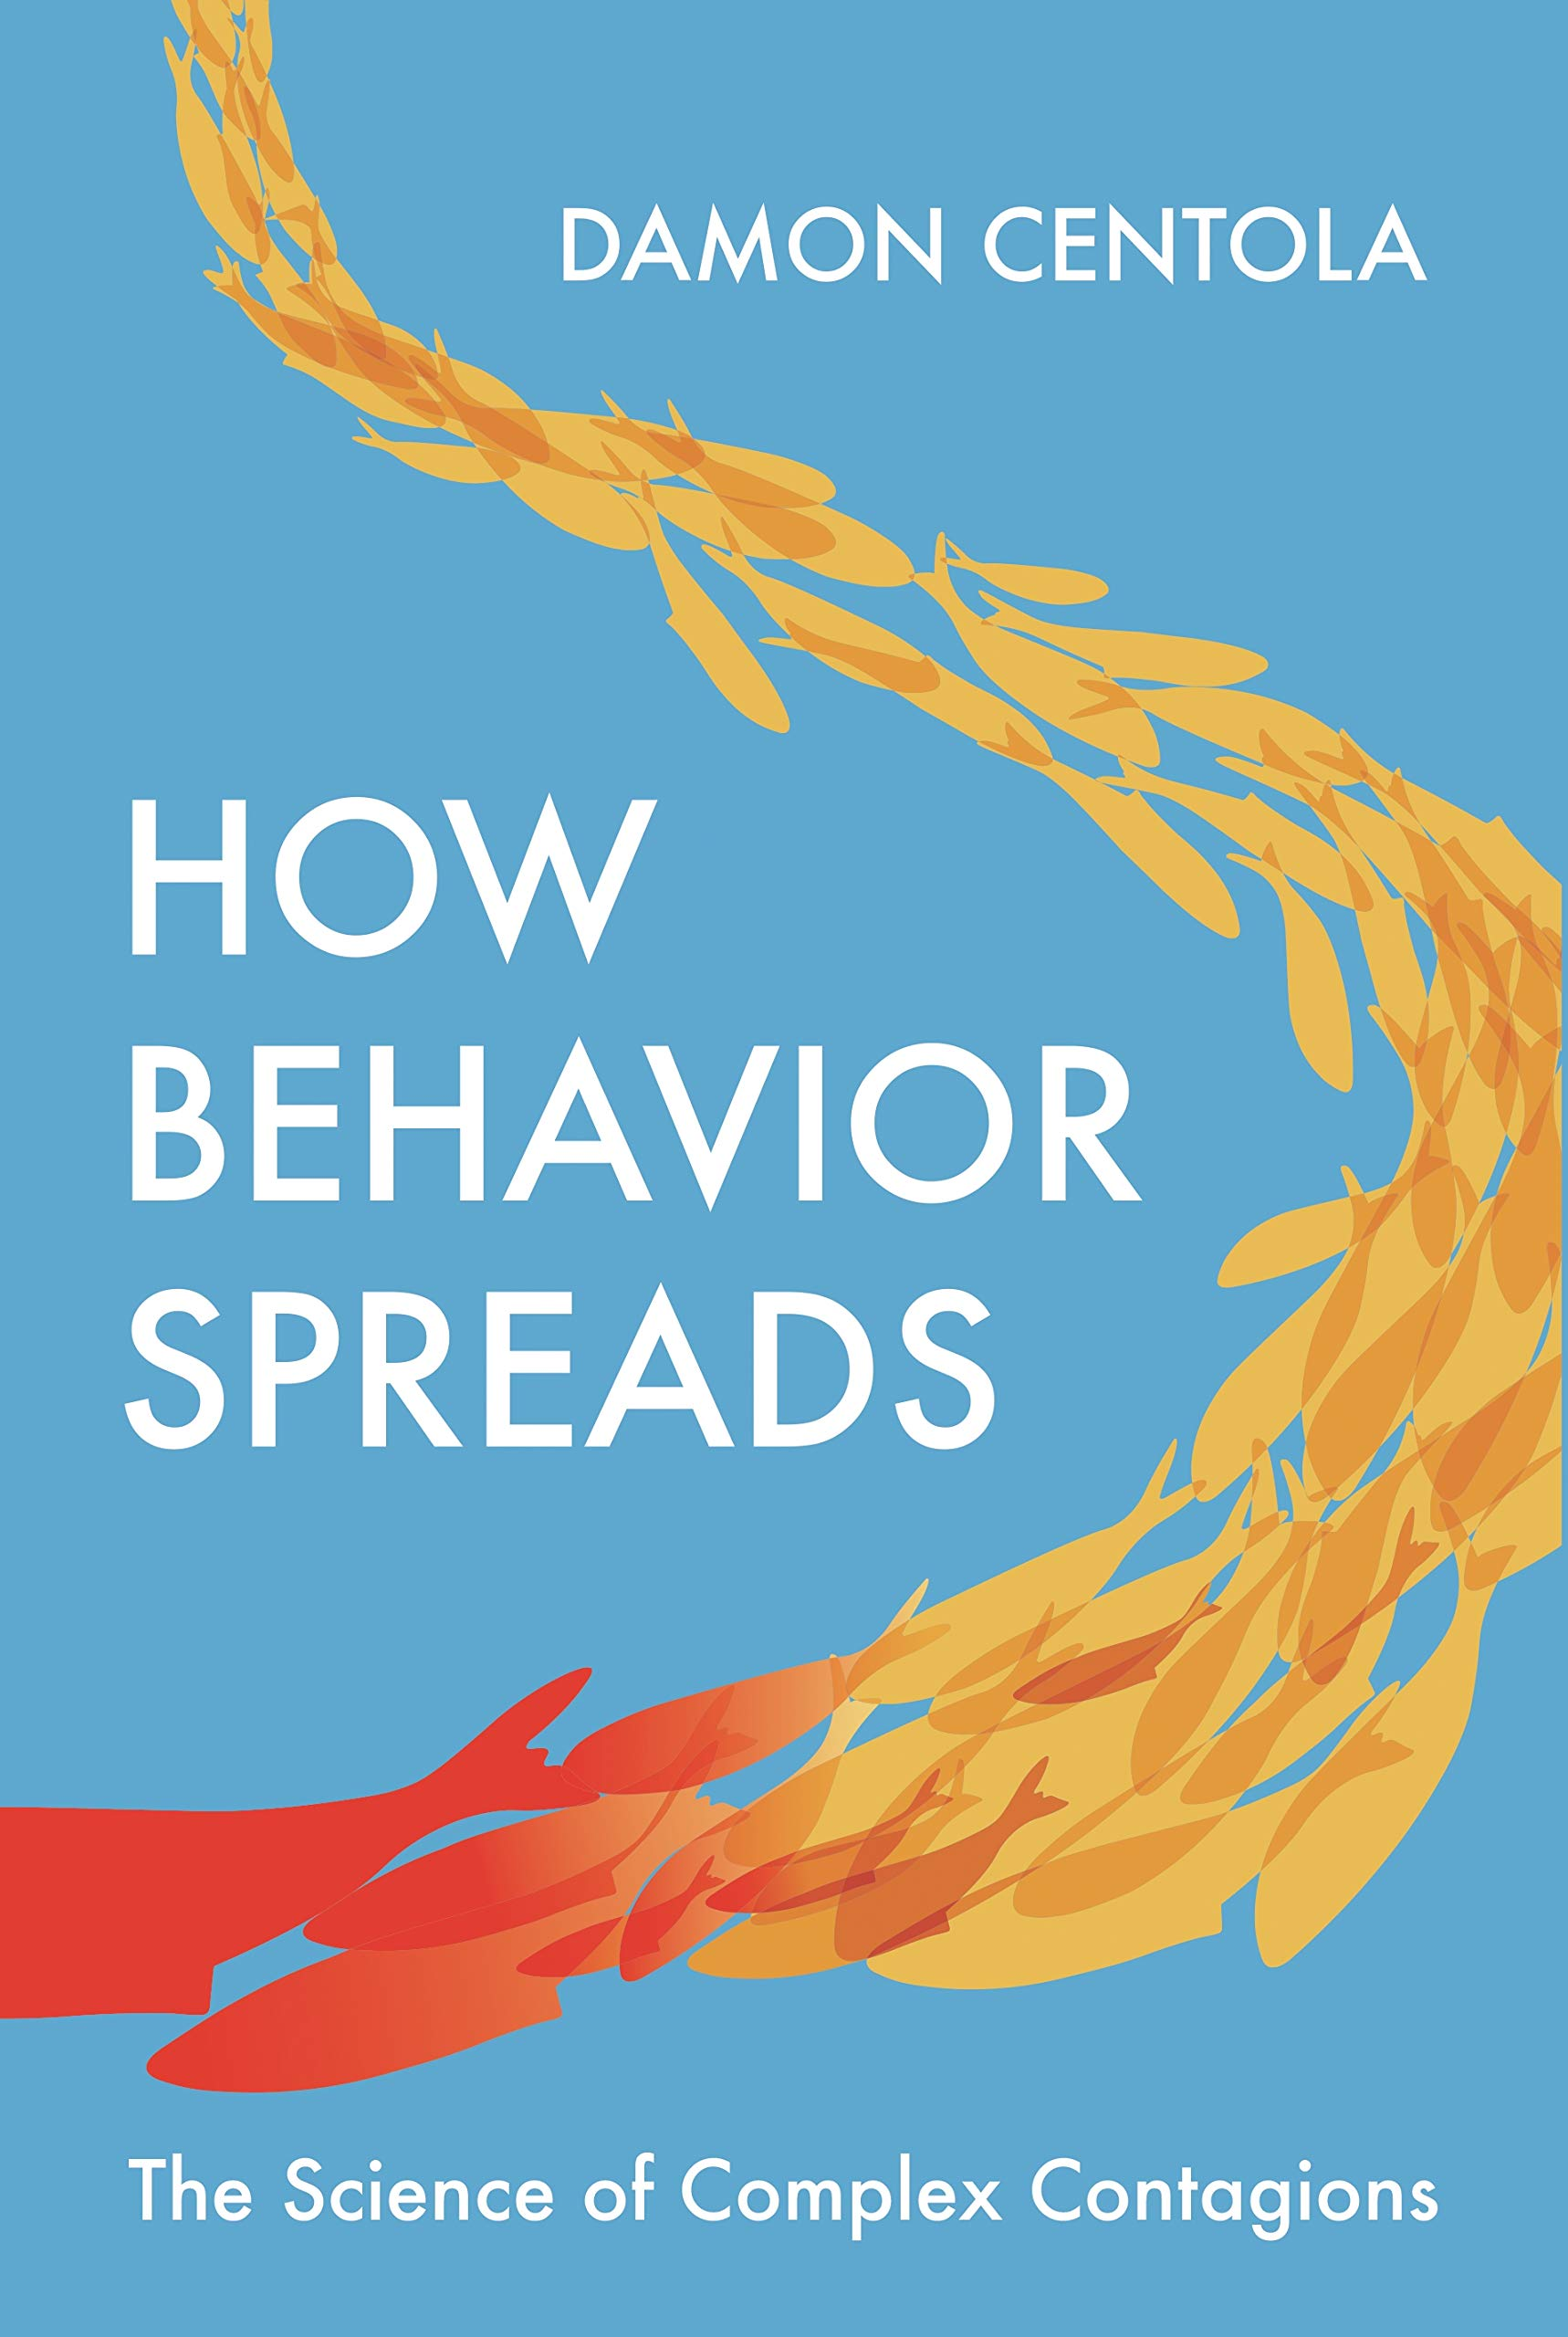 Image OfHow Behavior Spreads: The Science Of Complex Contagions